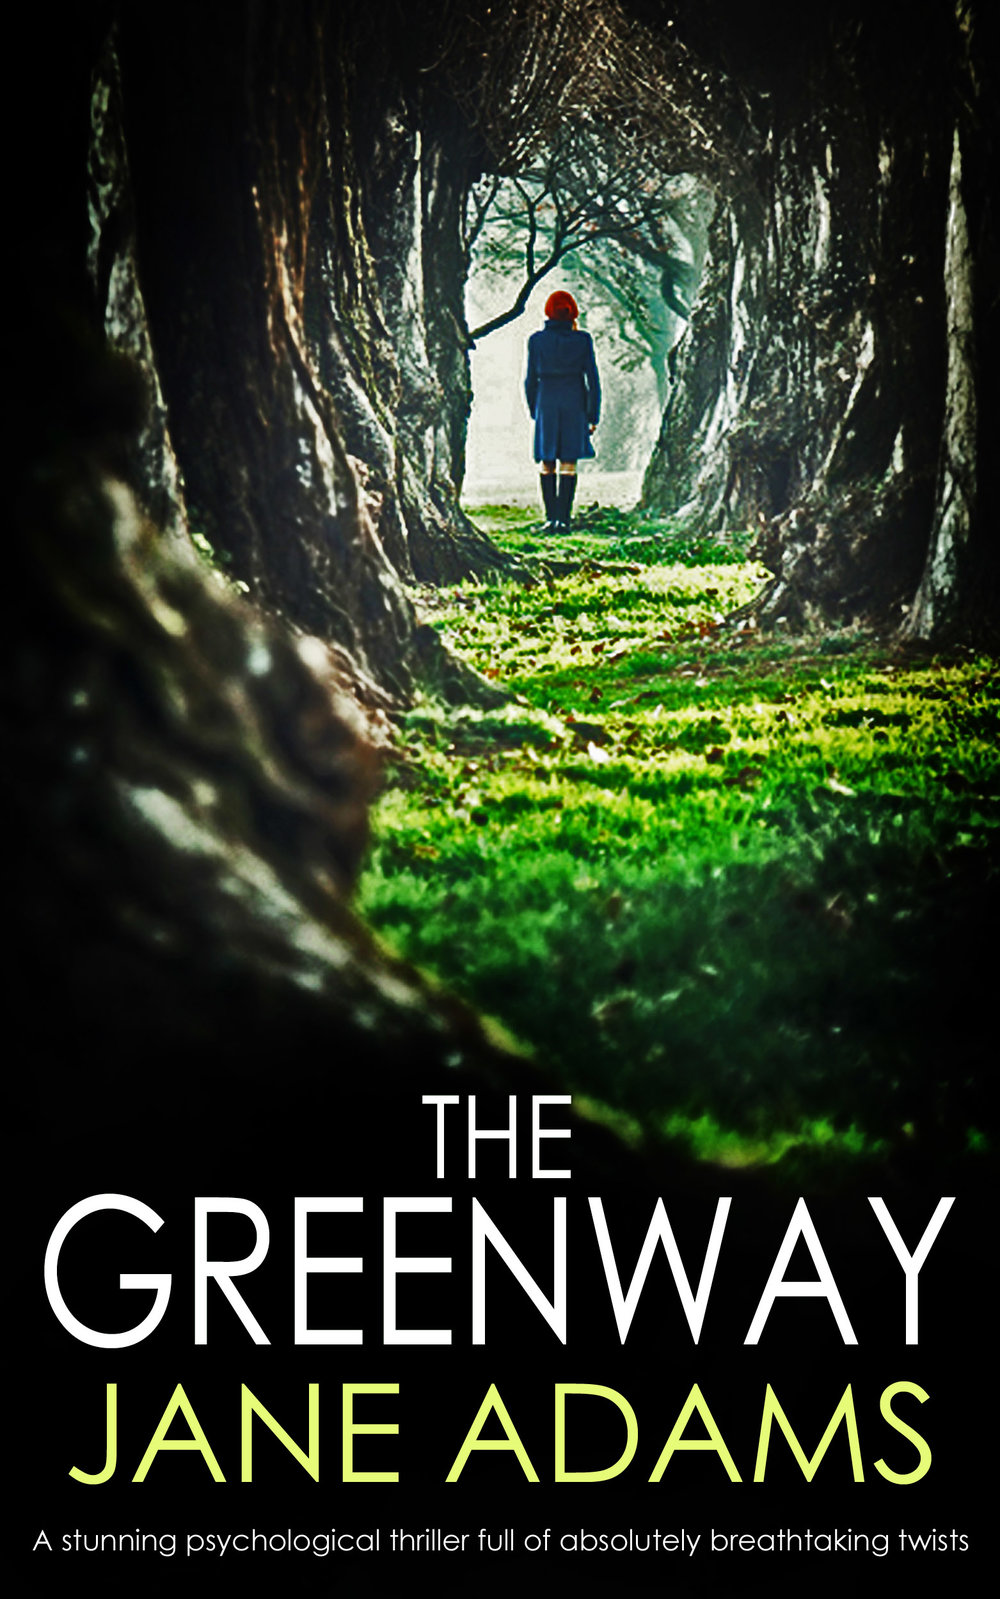 THE GREENWAY FINAL COVER.jpg